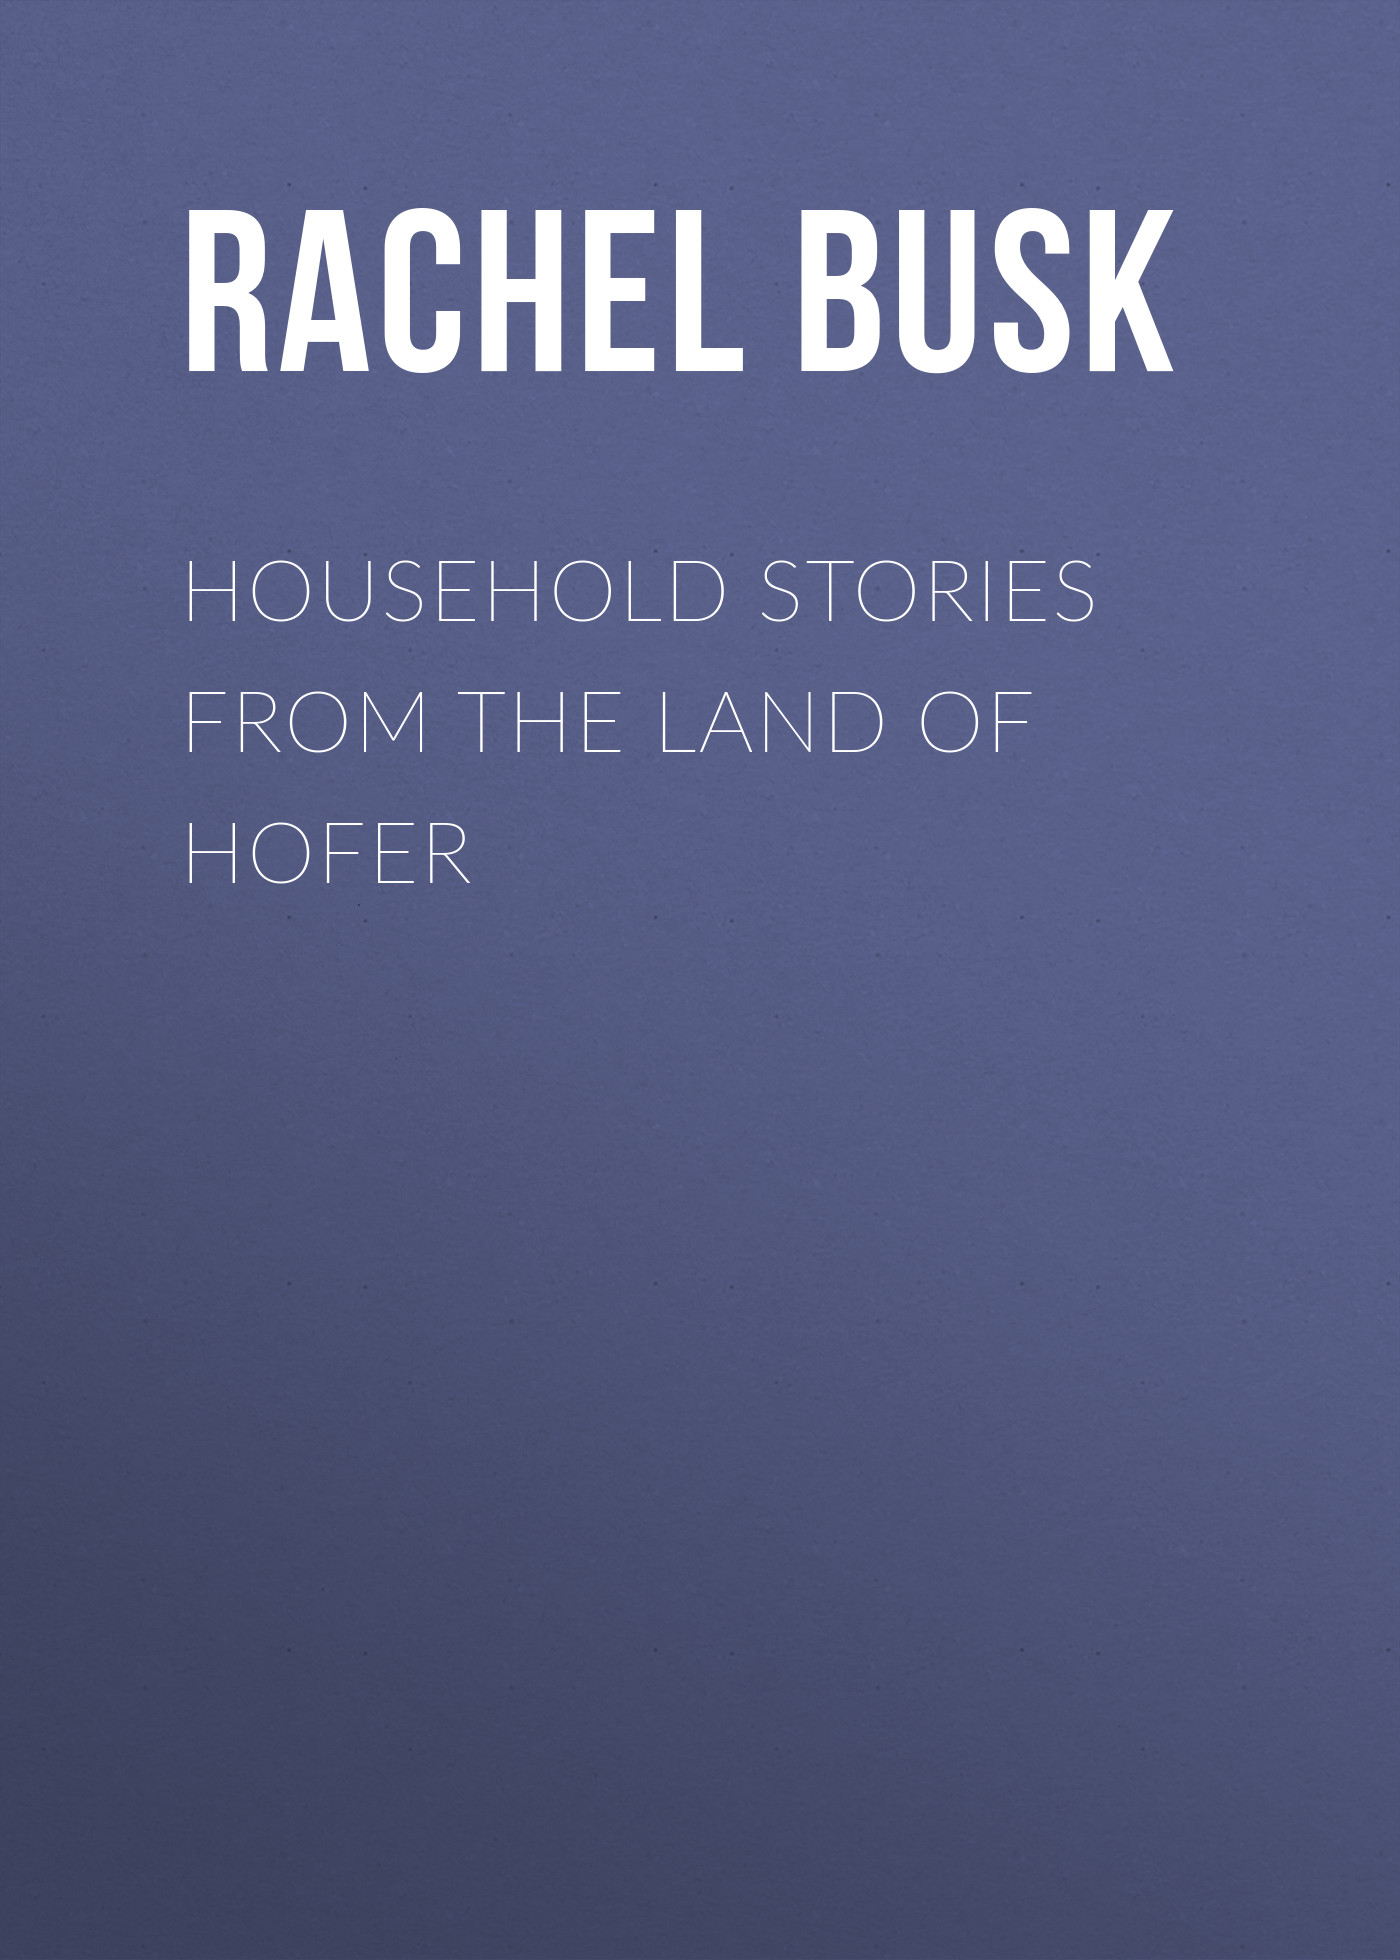 Busk Rachel Harriette Household stories from the Land of Hofer colfer chris land of stories the mother goose diaries